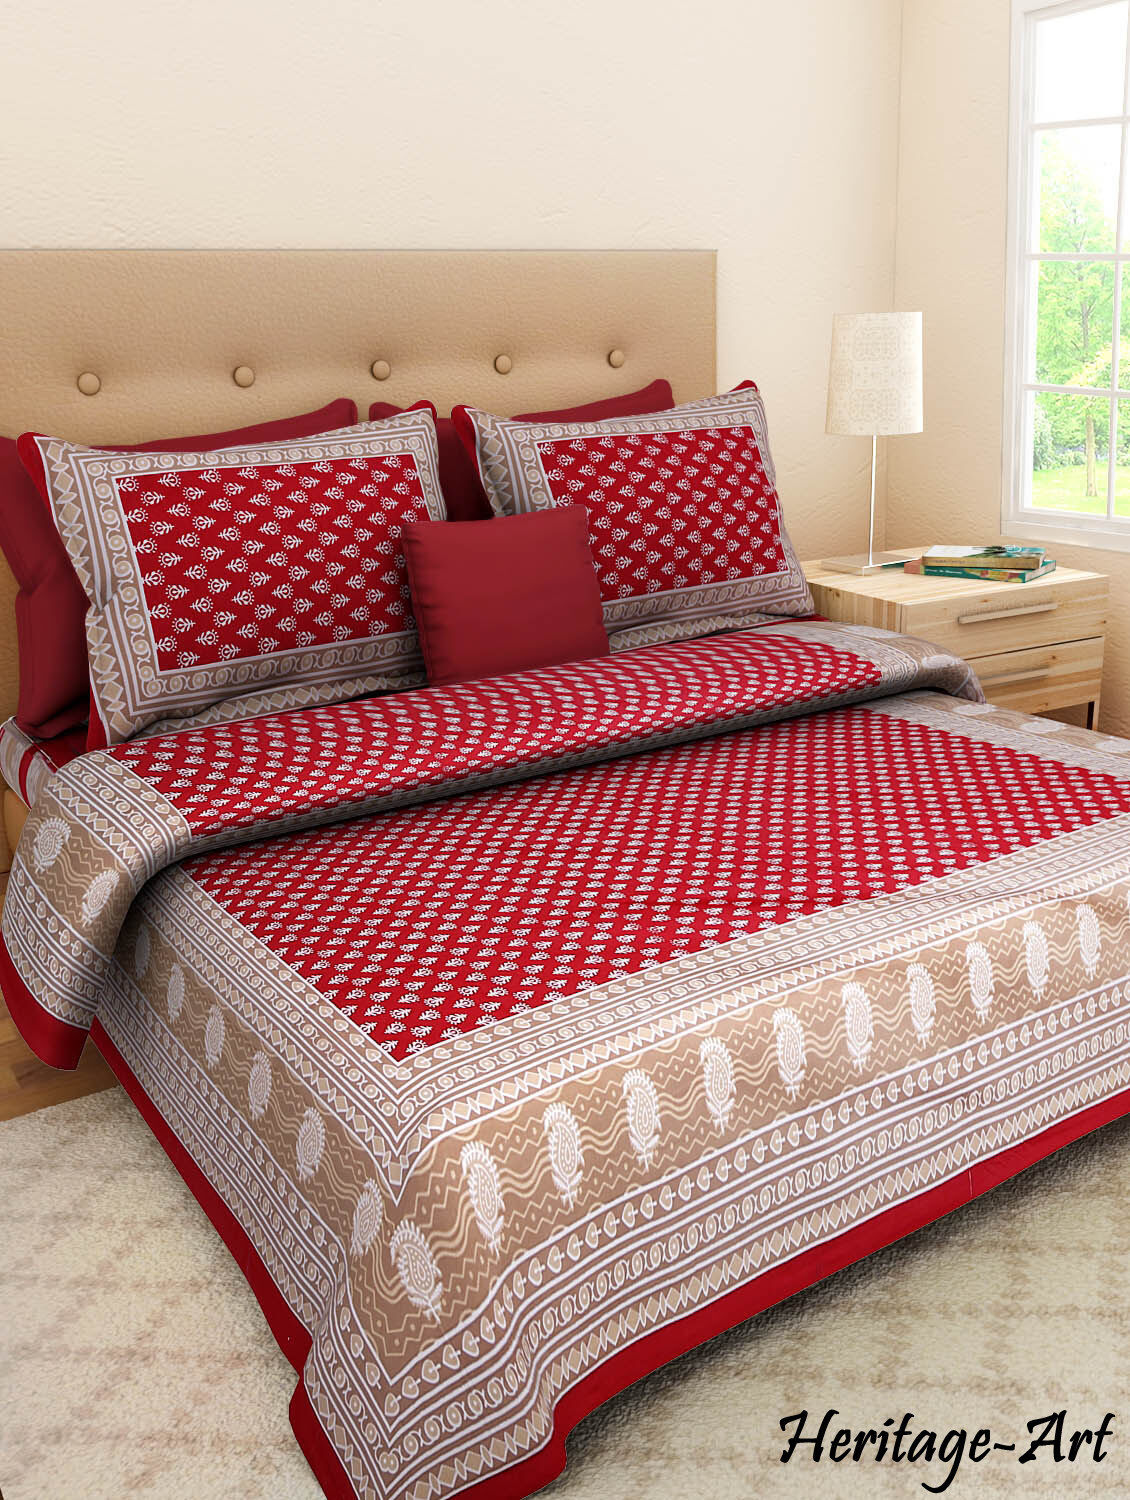 Rajasthani Handmade Latest Design New 100% Cotton Bed Sheet 2 Pillow Covers Set